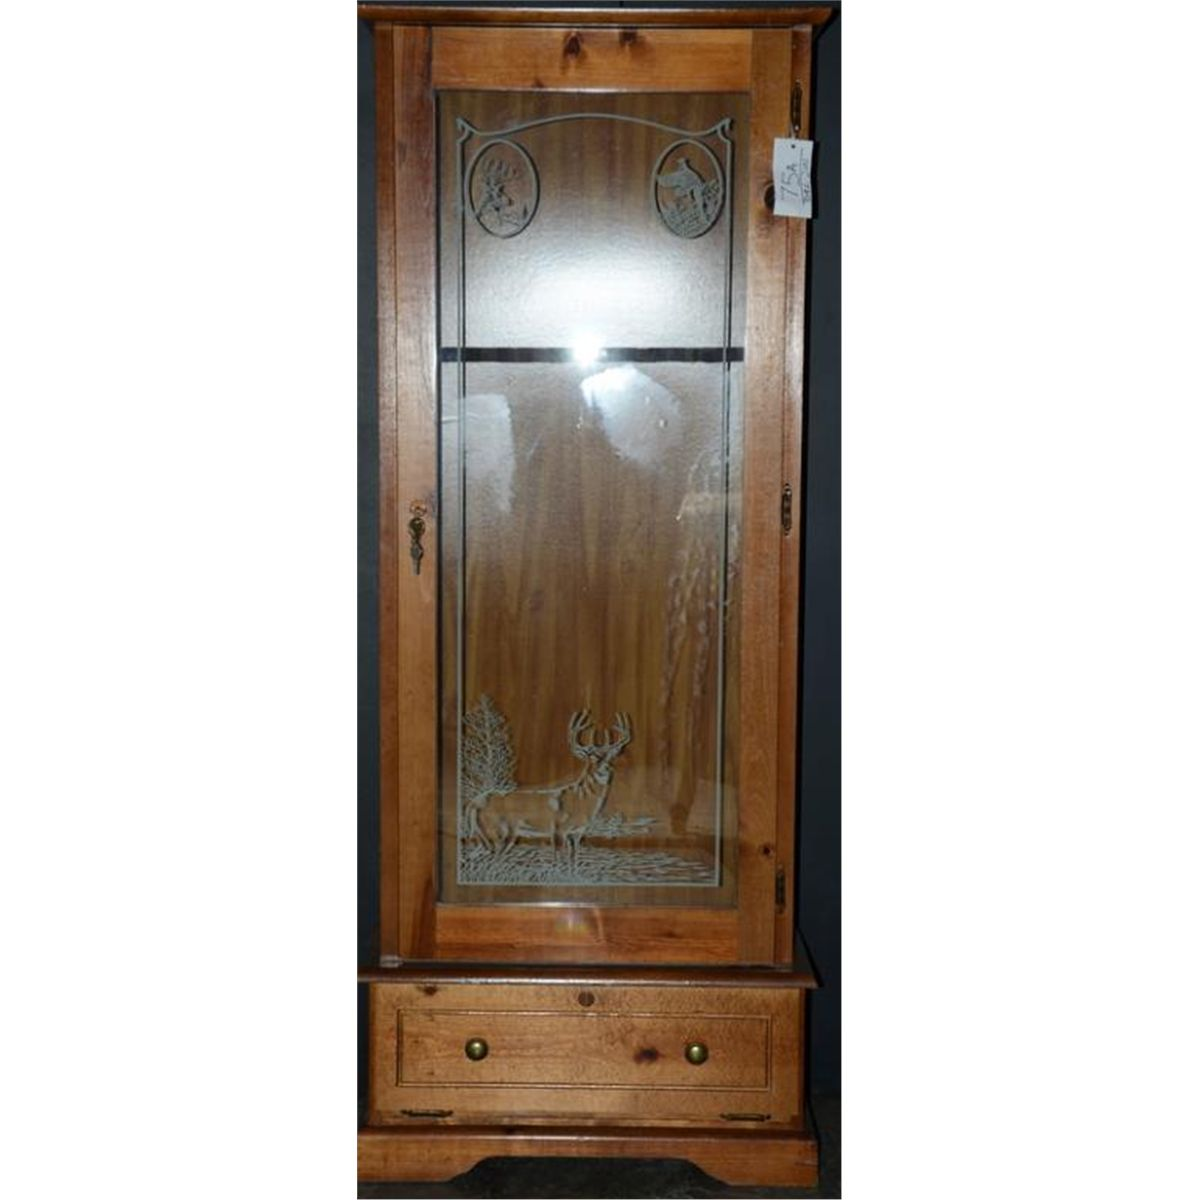 Genial Beautiful Long Arm Gun Cabinet Made Of Wood And With A Glass Front Door;  Interior Can Accommodate